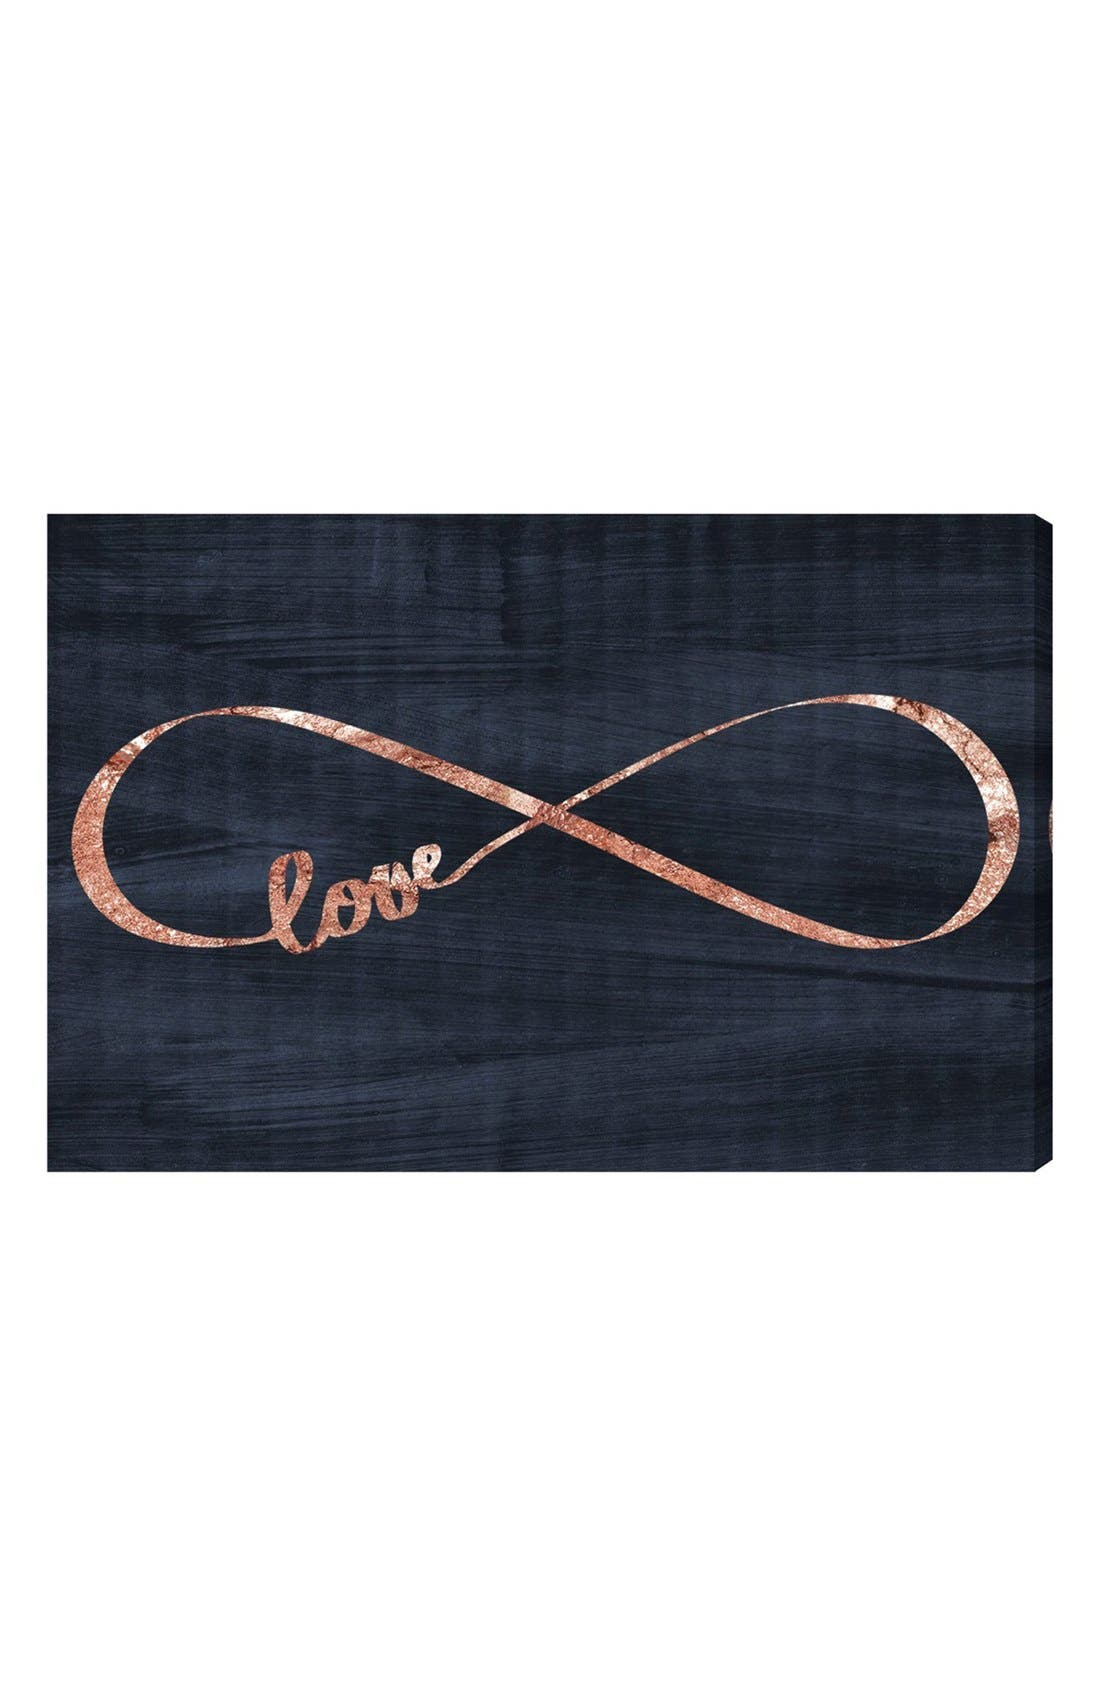 Main Image - Oliver Gal 'Infinite Love' Canvas Wall Art